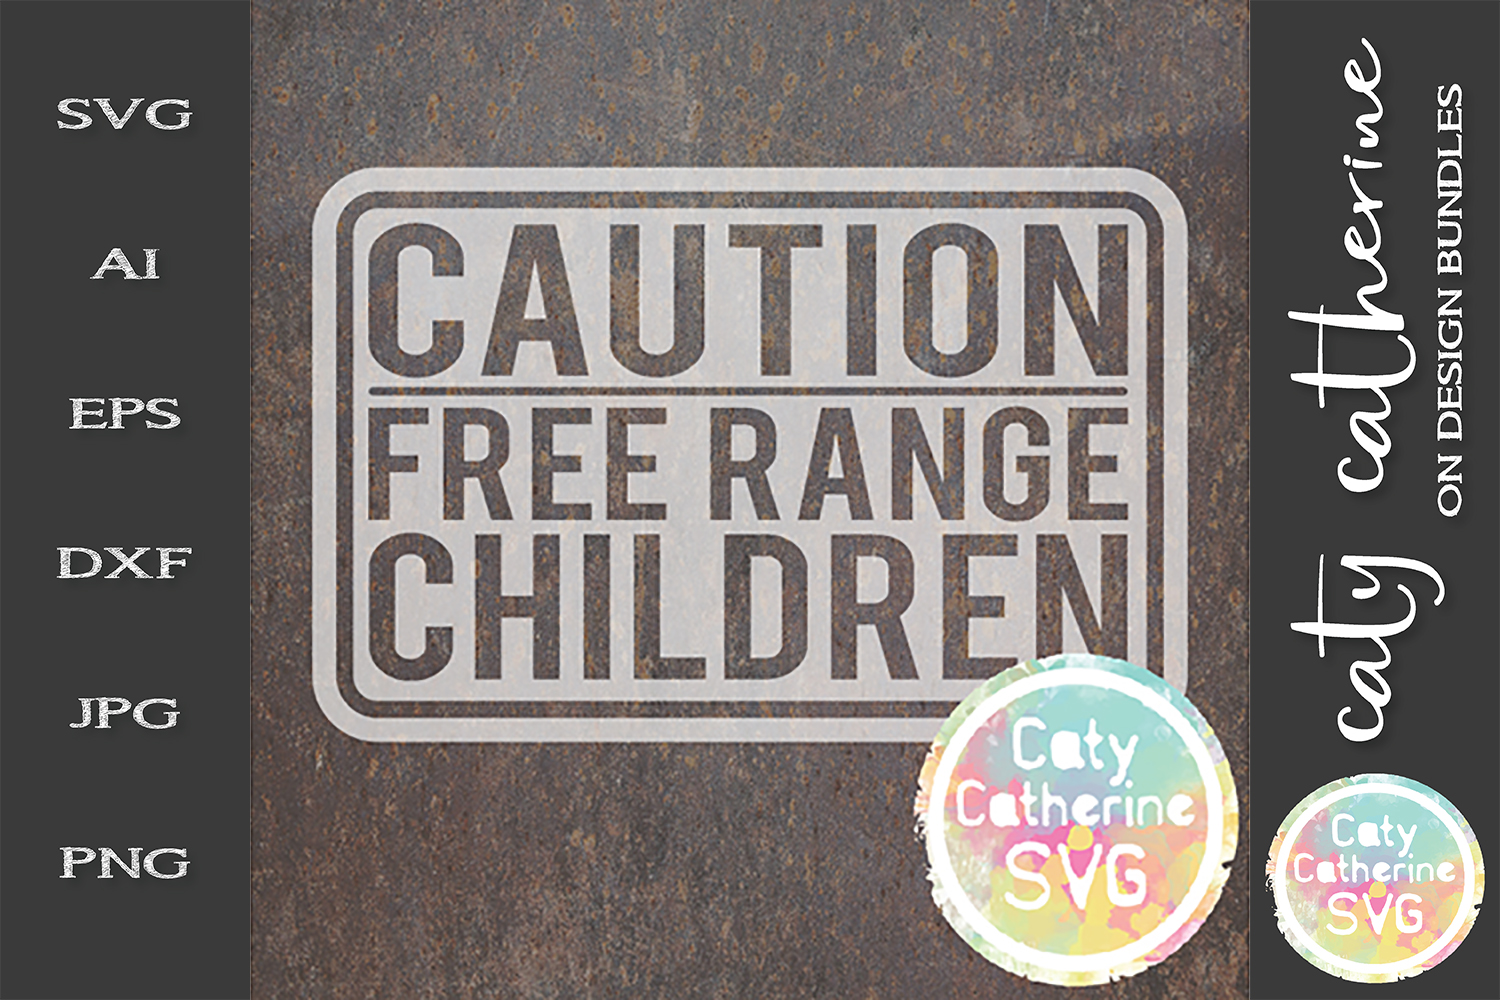 CAUTION Free Range Children Funny Sign SVG Cut File example image 1